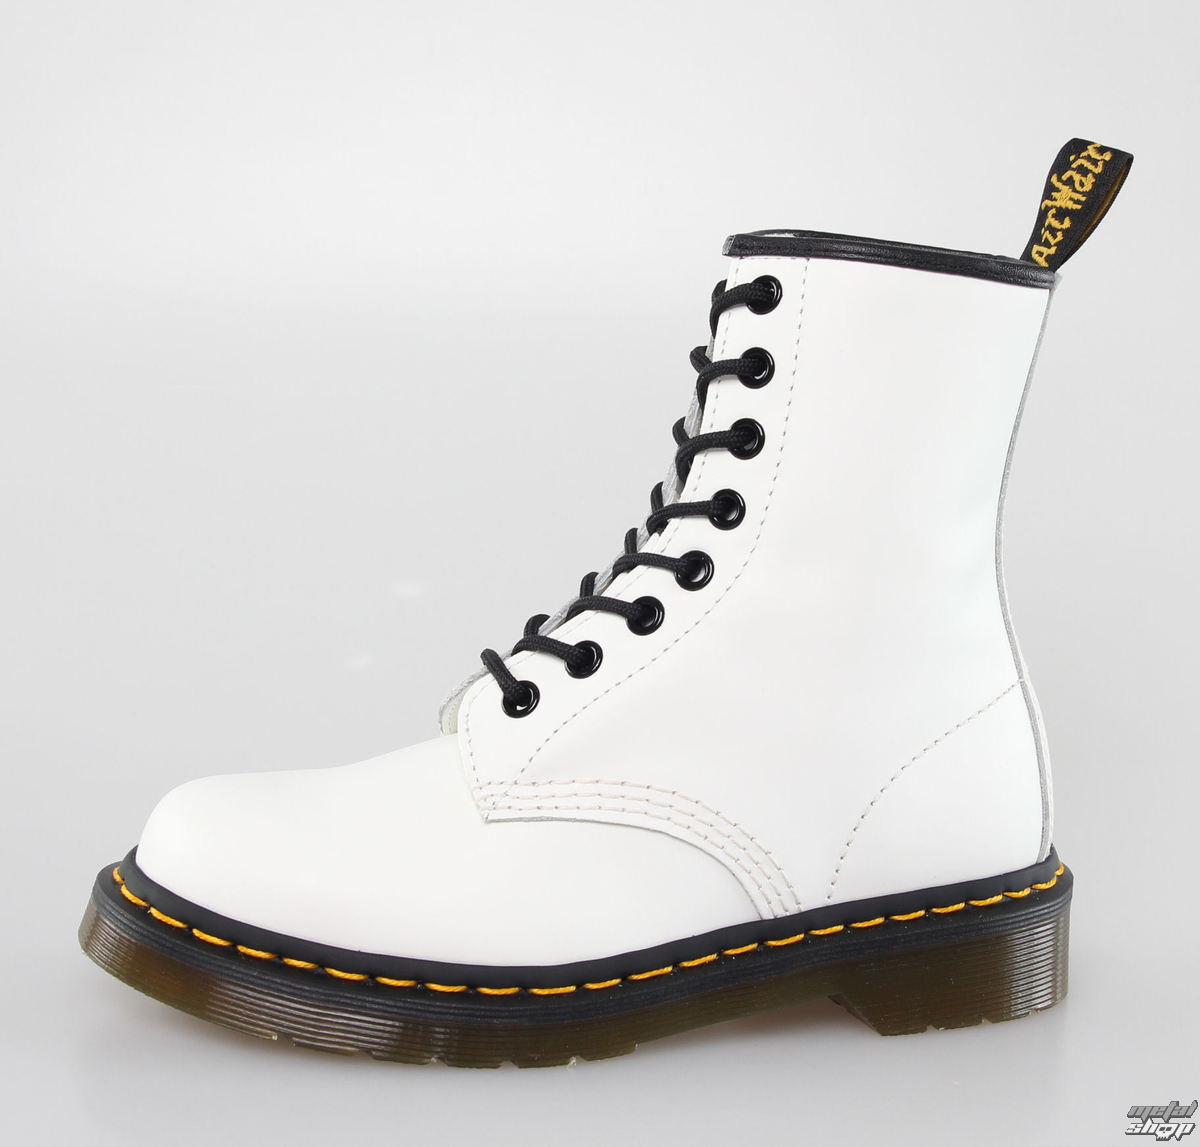 46826277f63 chaussures DR. MARTENS - 8 trous - 1460 - BLANC SMOOTH - metalmonde.fr